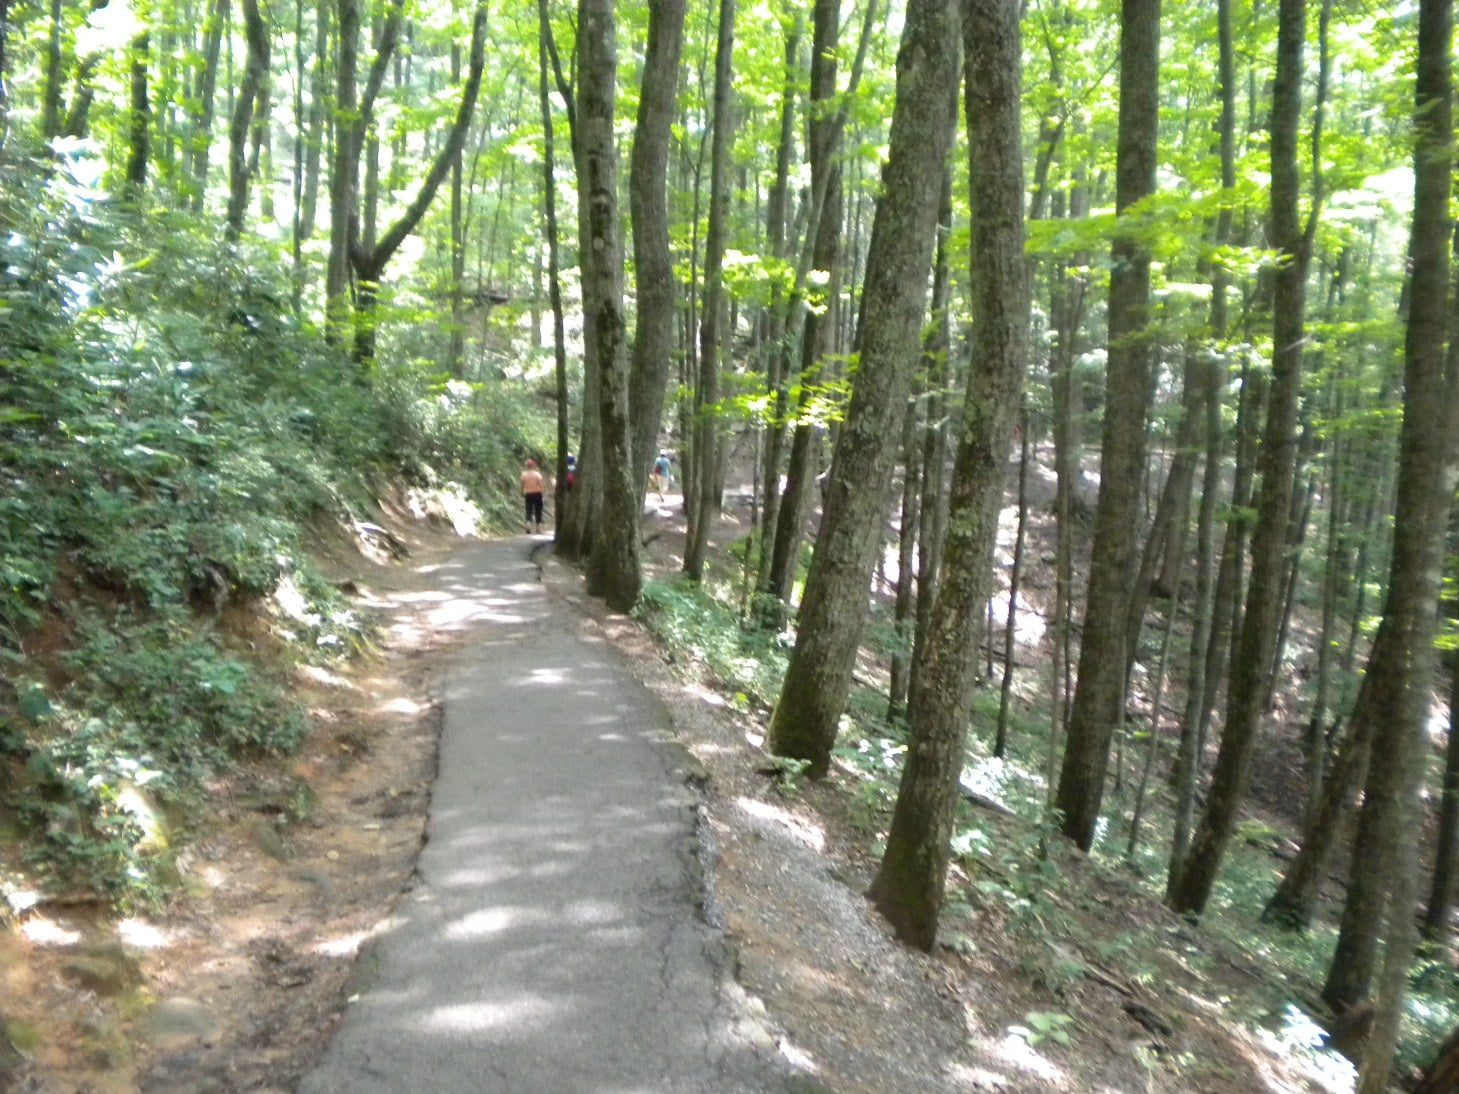 6-3-2014 Laurel Falls Hike – Tree Lined Trail